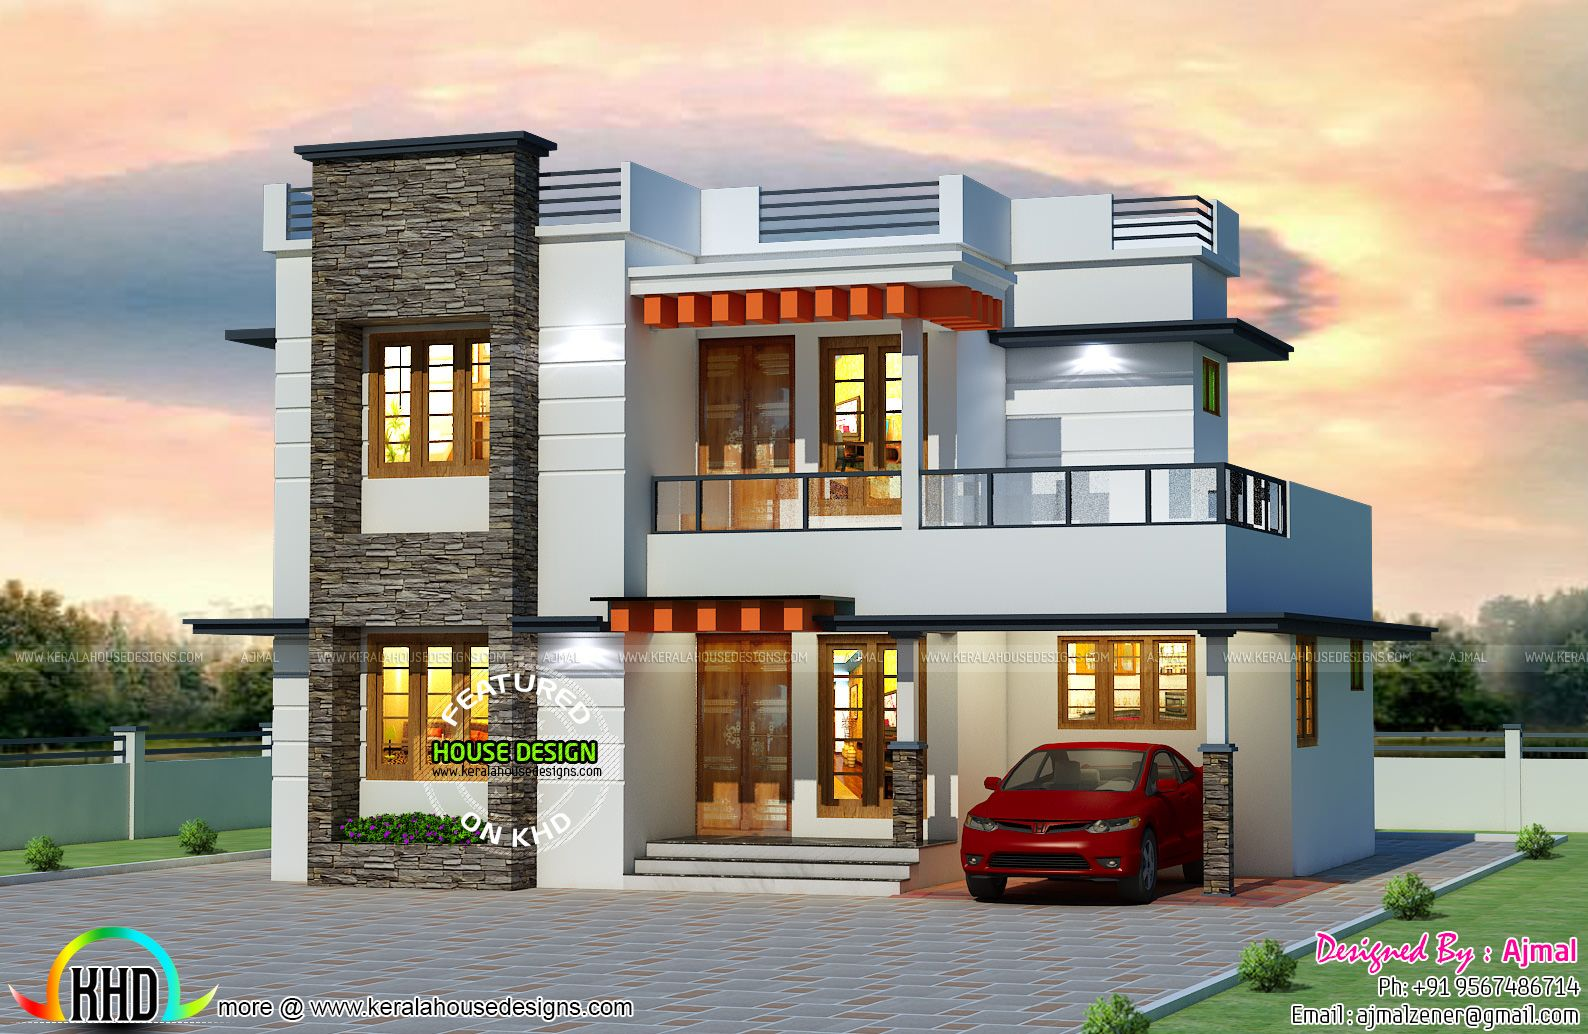 25 Lakhs Cost Estimated Kerala Home Evler Kerala House Design